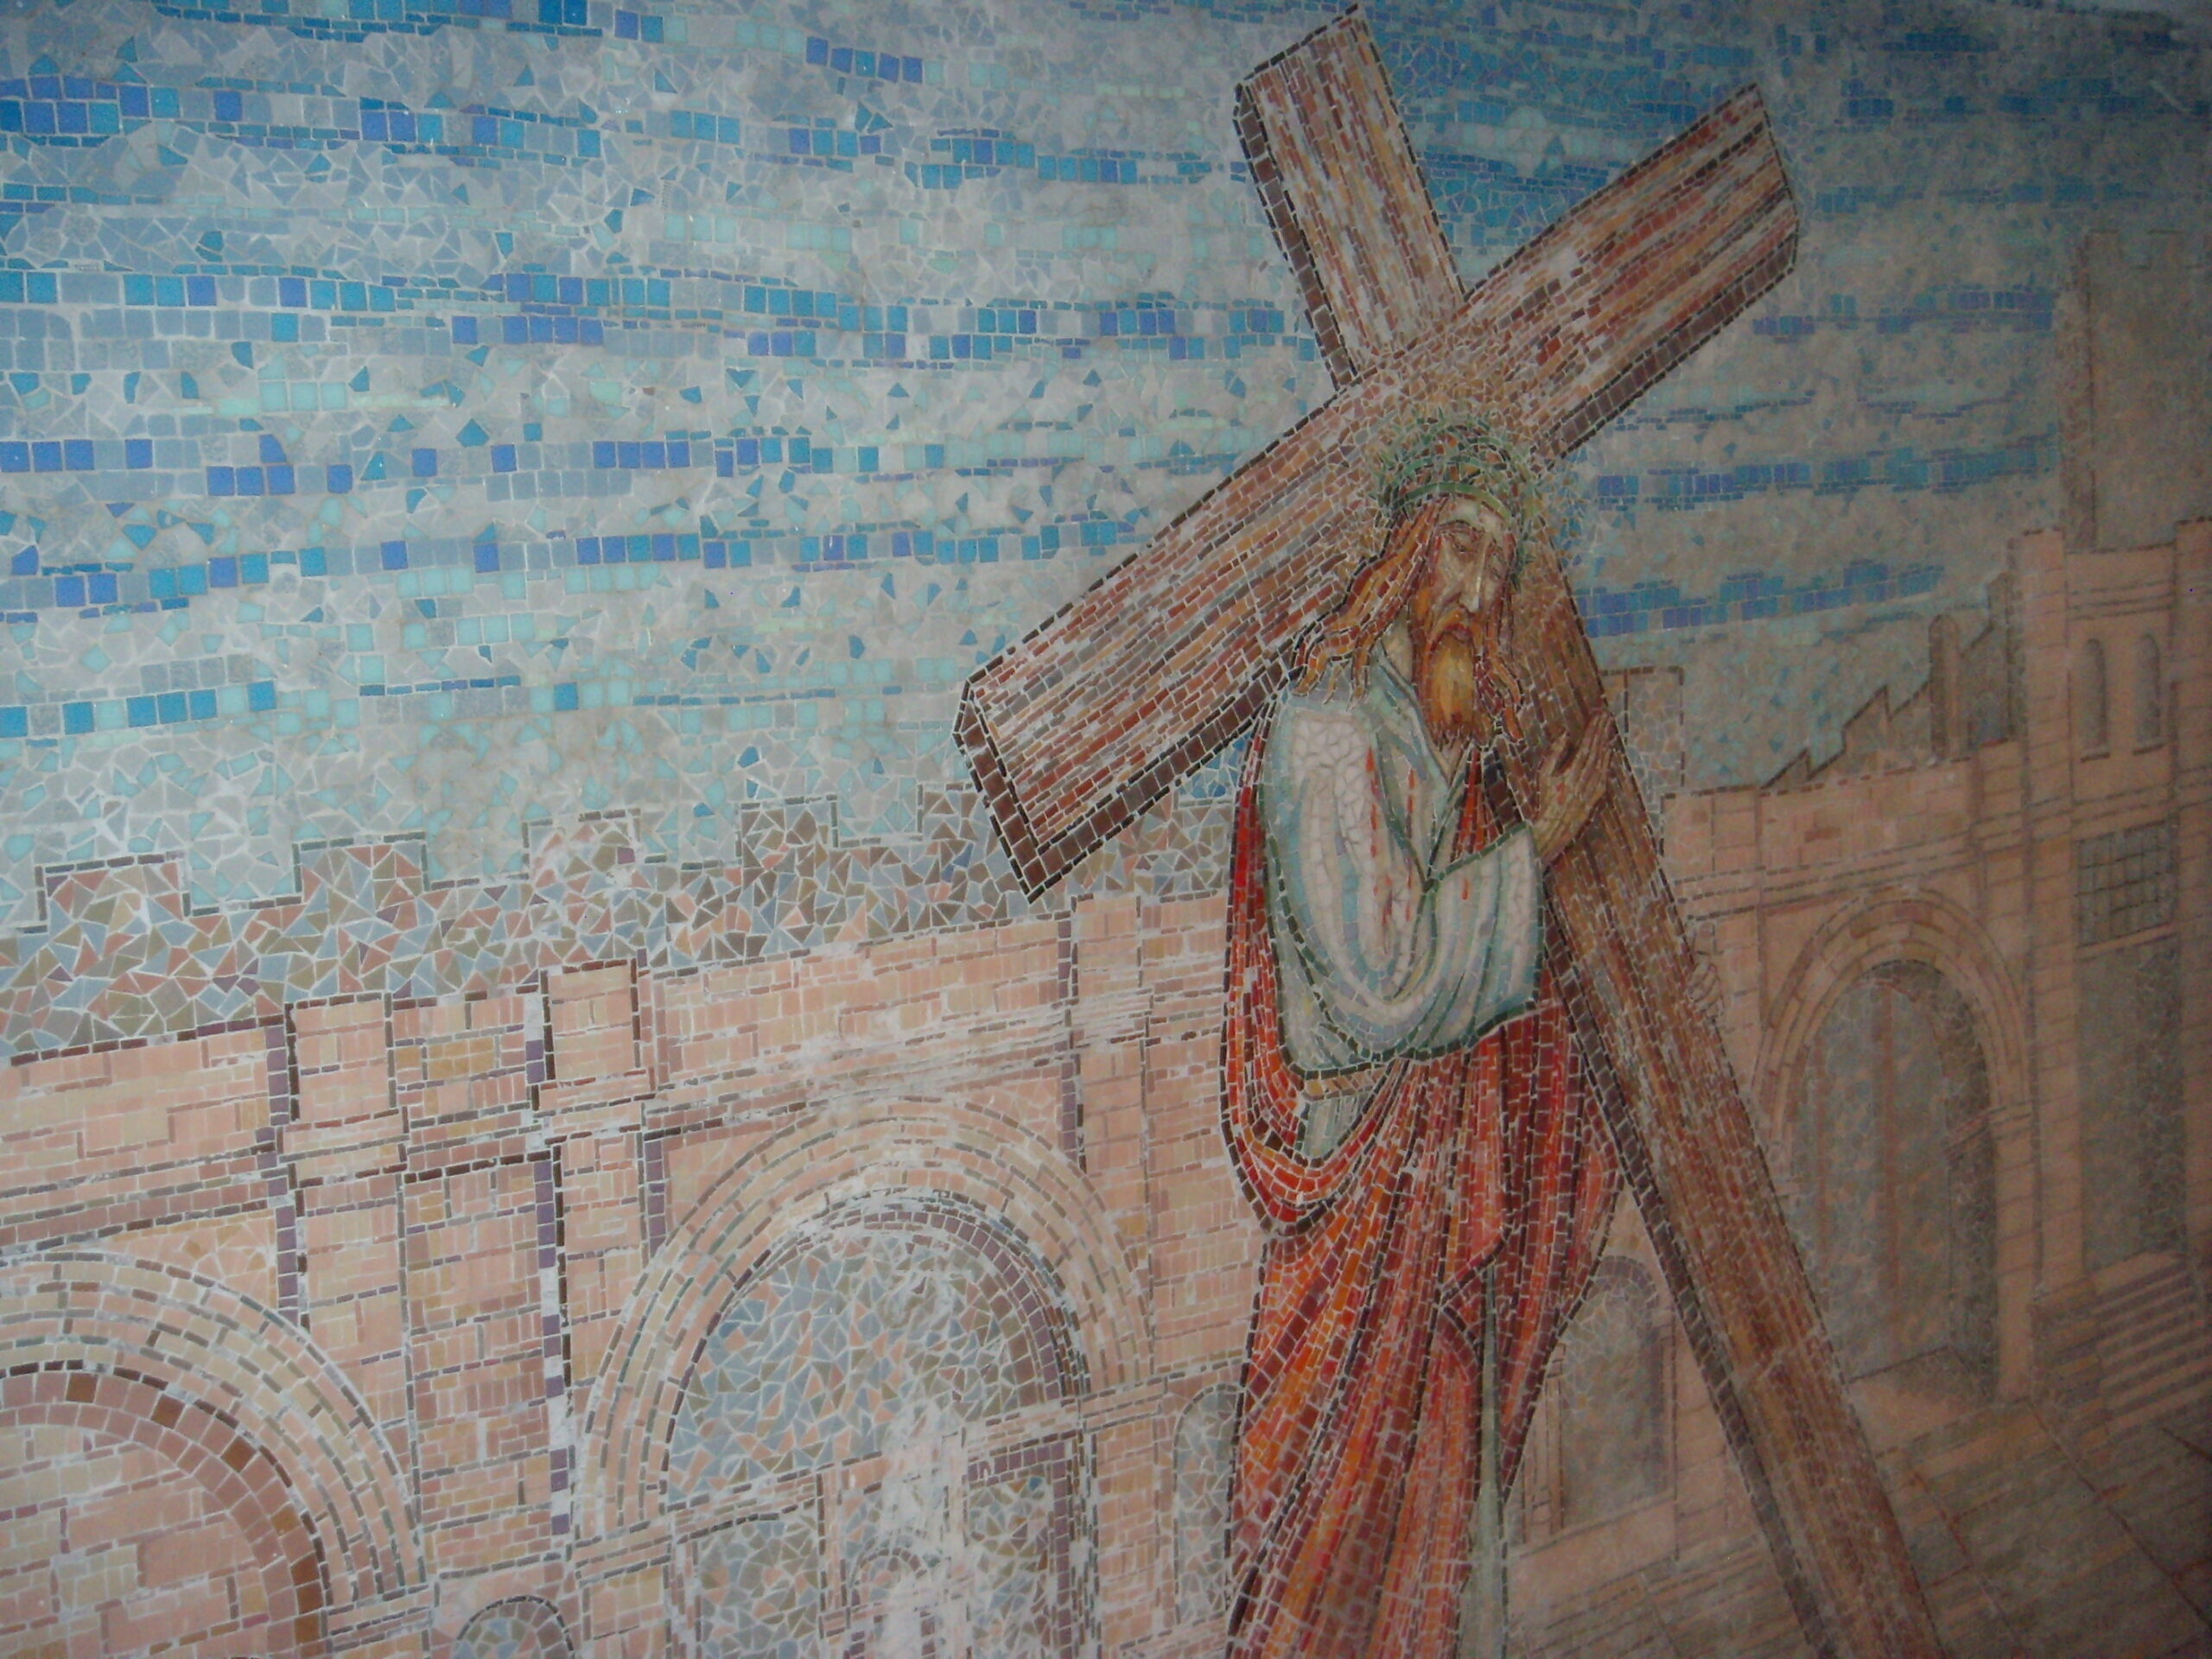 mural of Jesus carrying cross